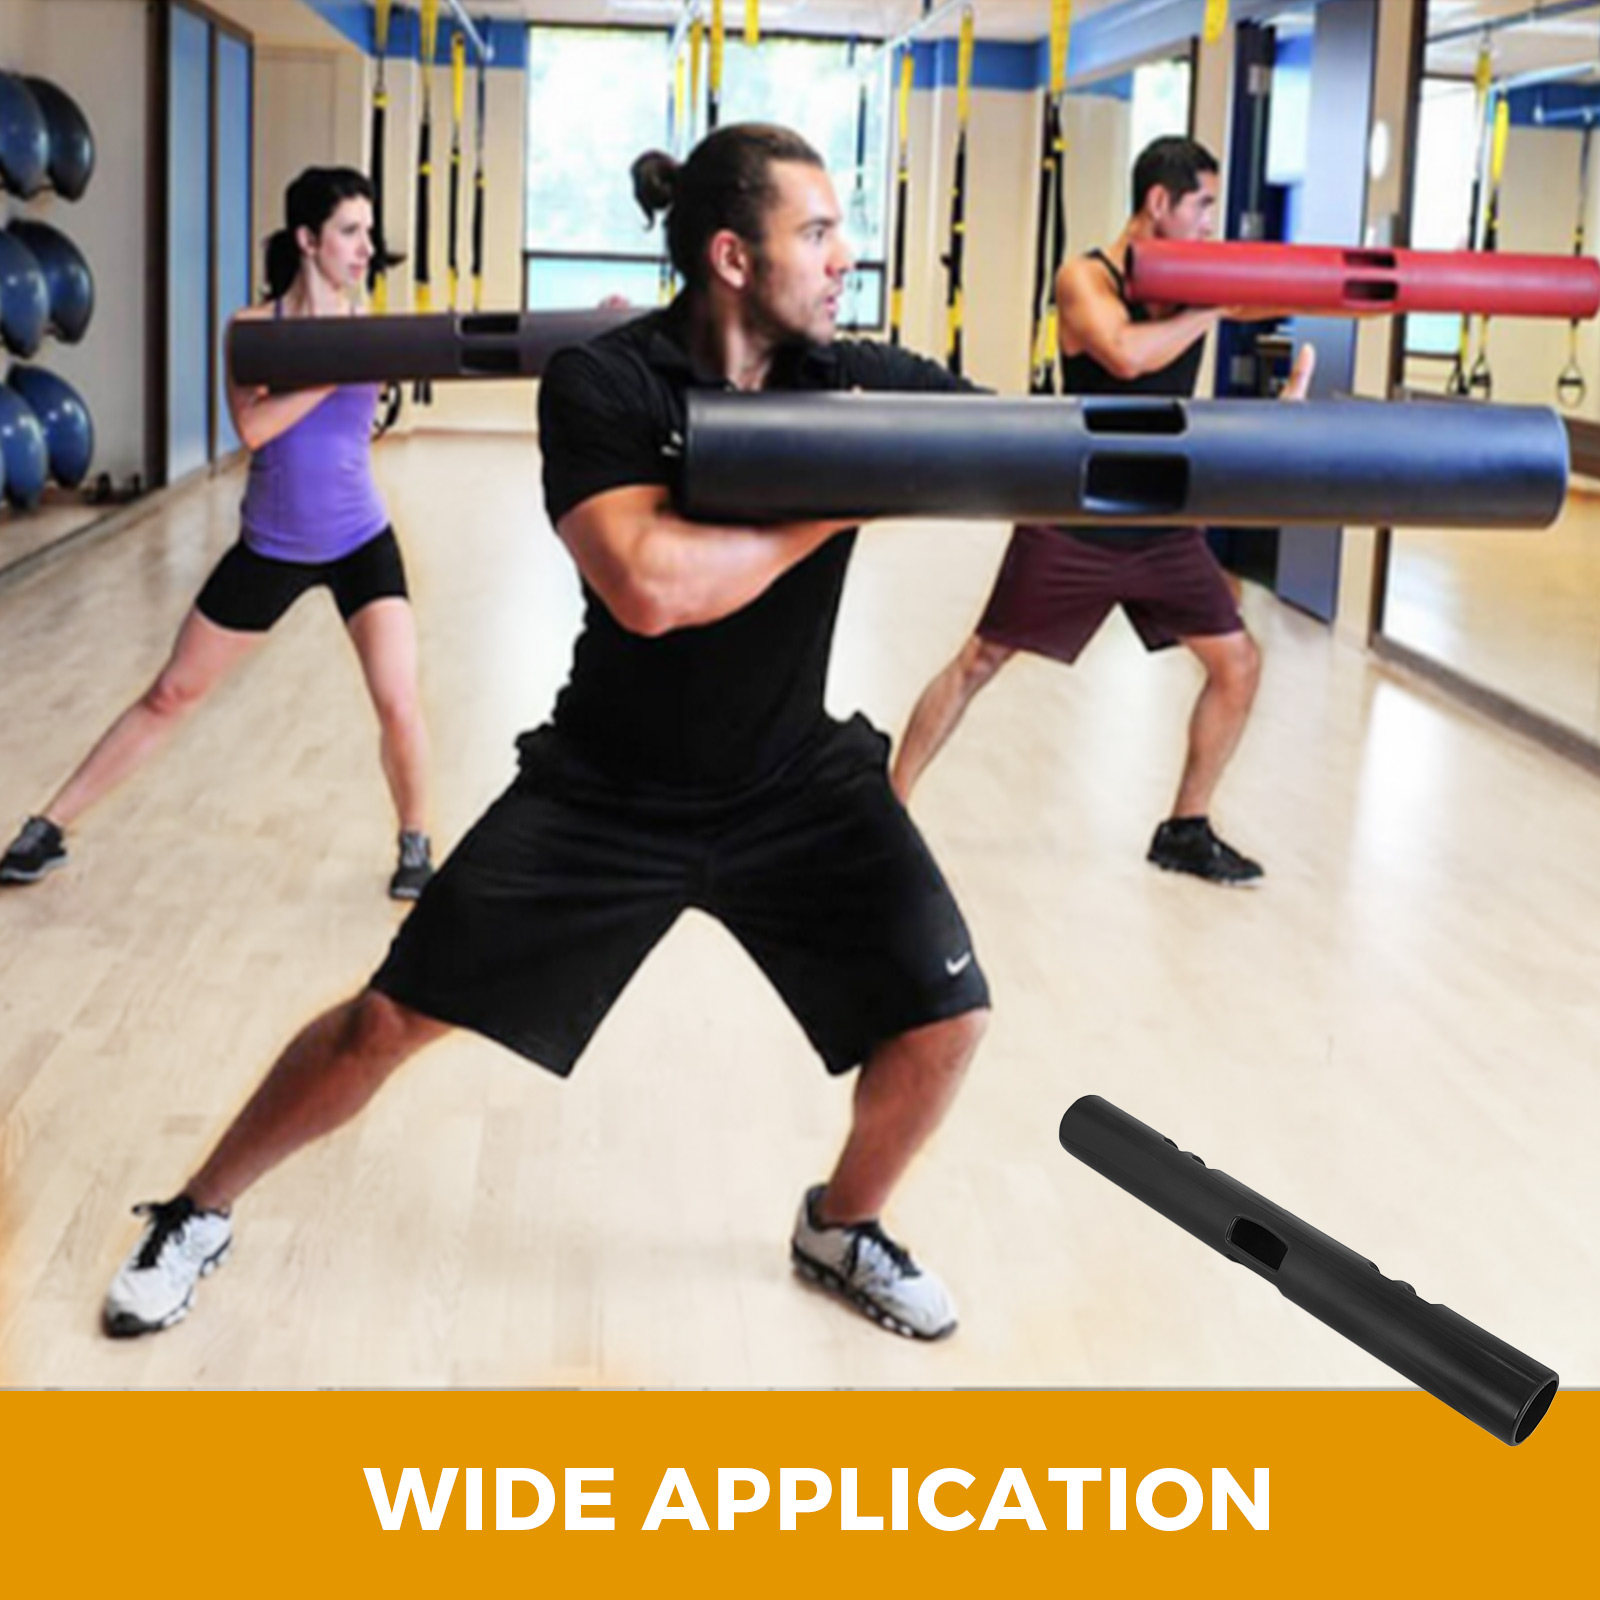 Vipr-Fitpro-Fitness-Tube-Loaded-Movement-Training-weightlifting-4-6-8-10-12-Kg thumbnail 271